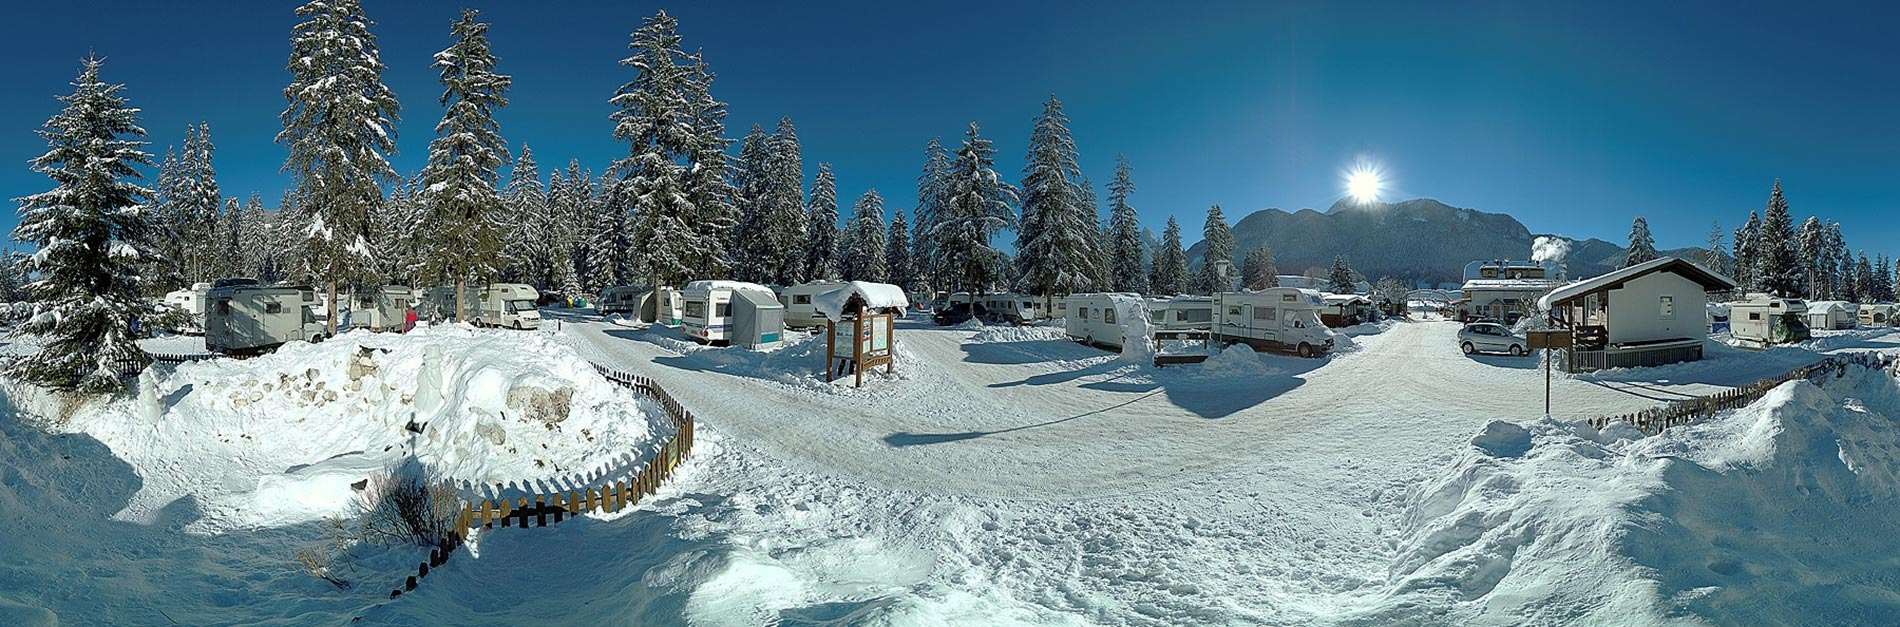 Camping Olympia im Winter